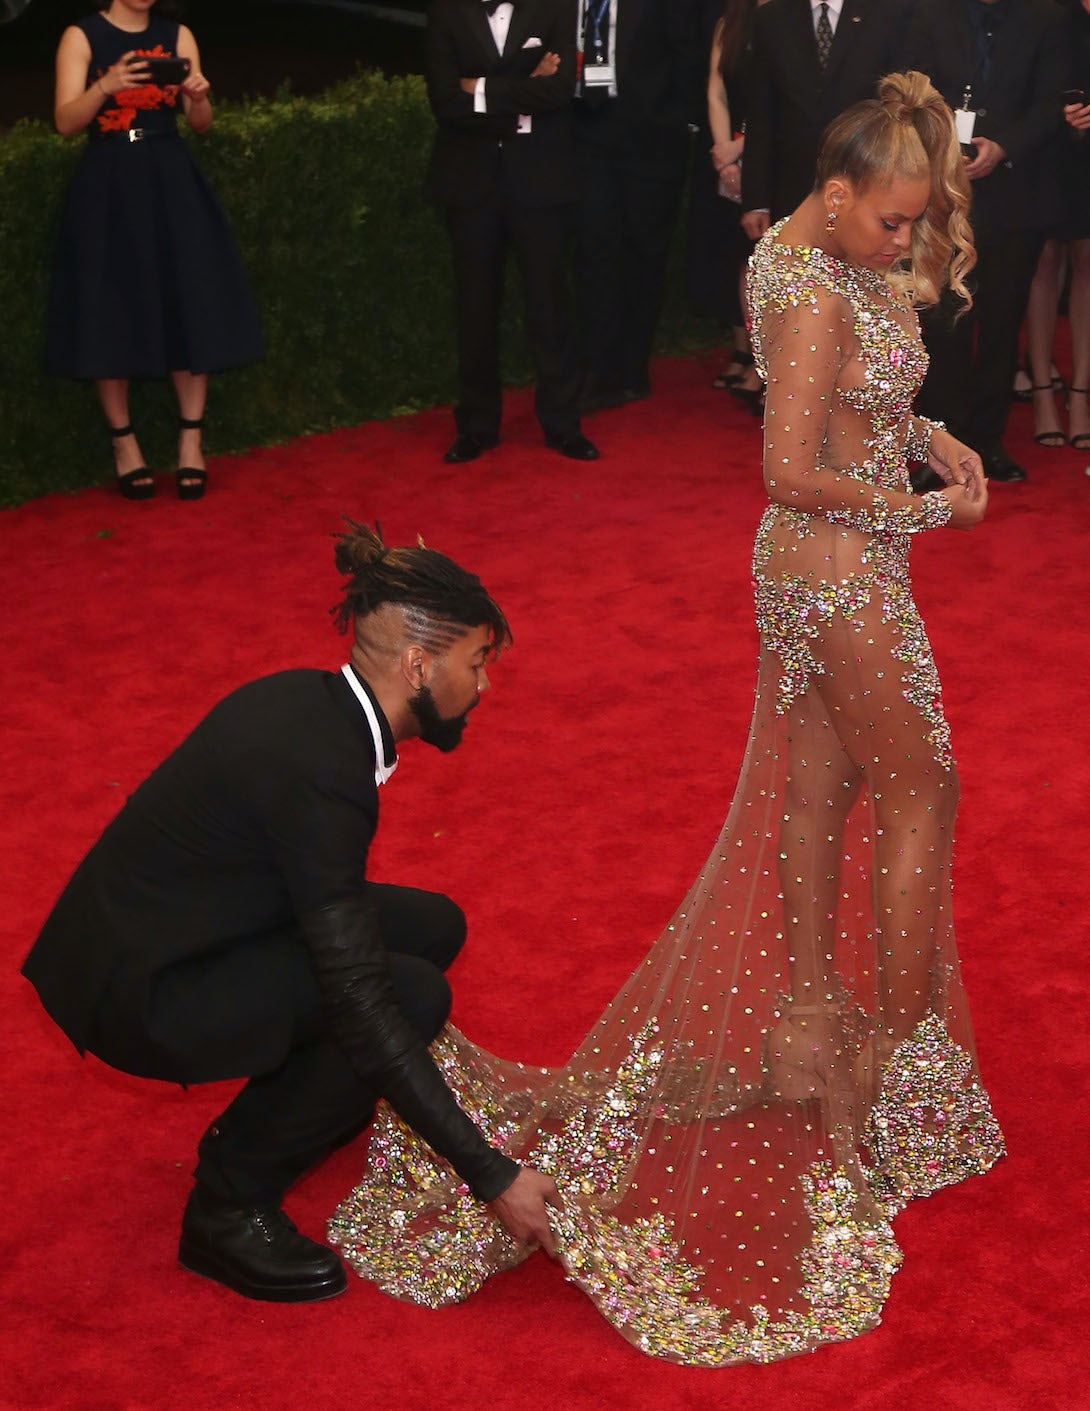 Celebrity stylist Ty Hunter attends to Beyoncé's dress at the Met Ball 2015 | Source: Getty